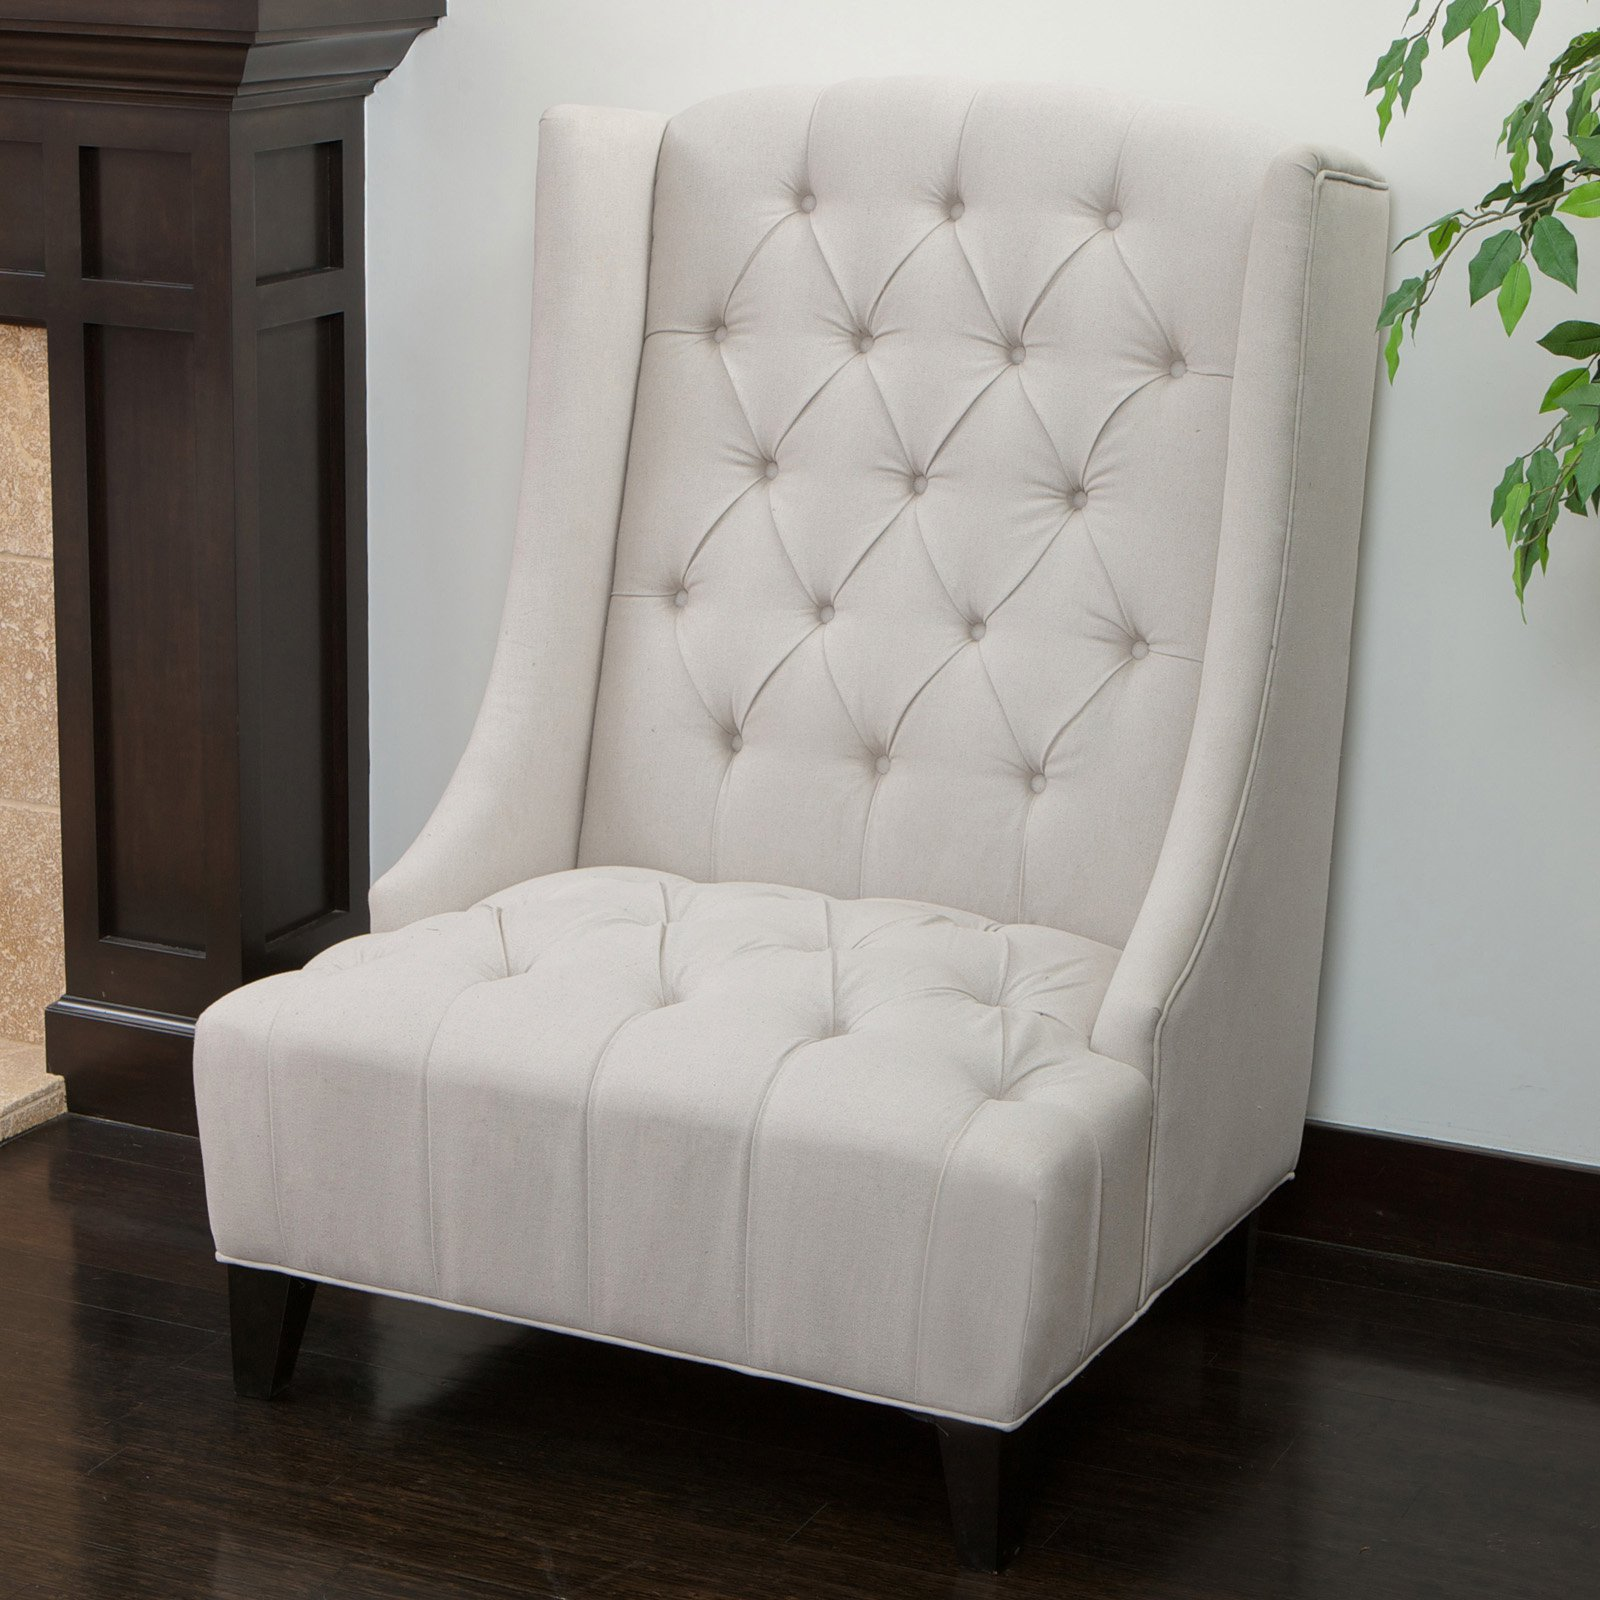 Best Selling Home Irvine Wingback Accent Chair